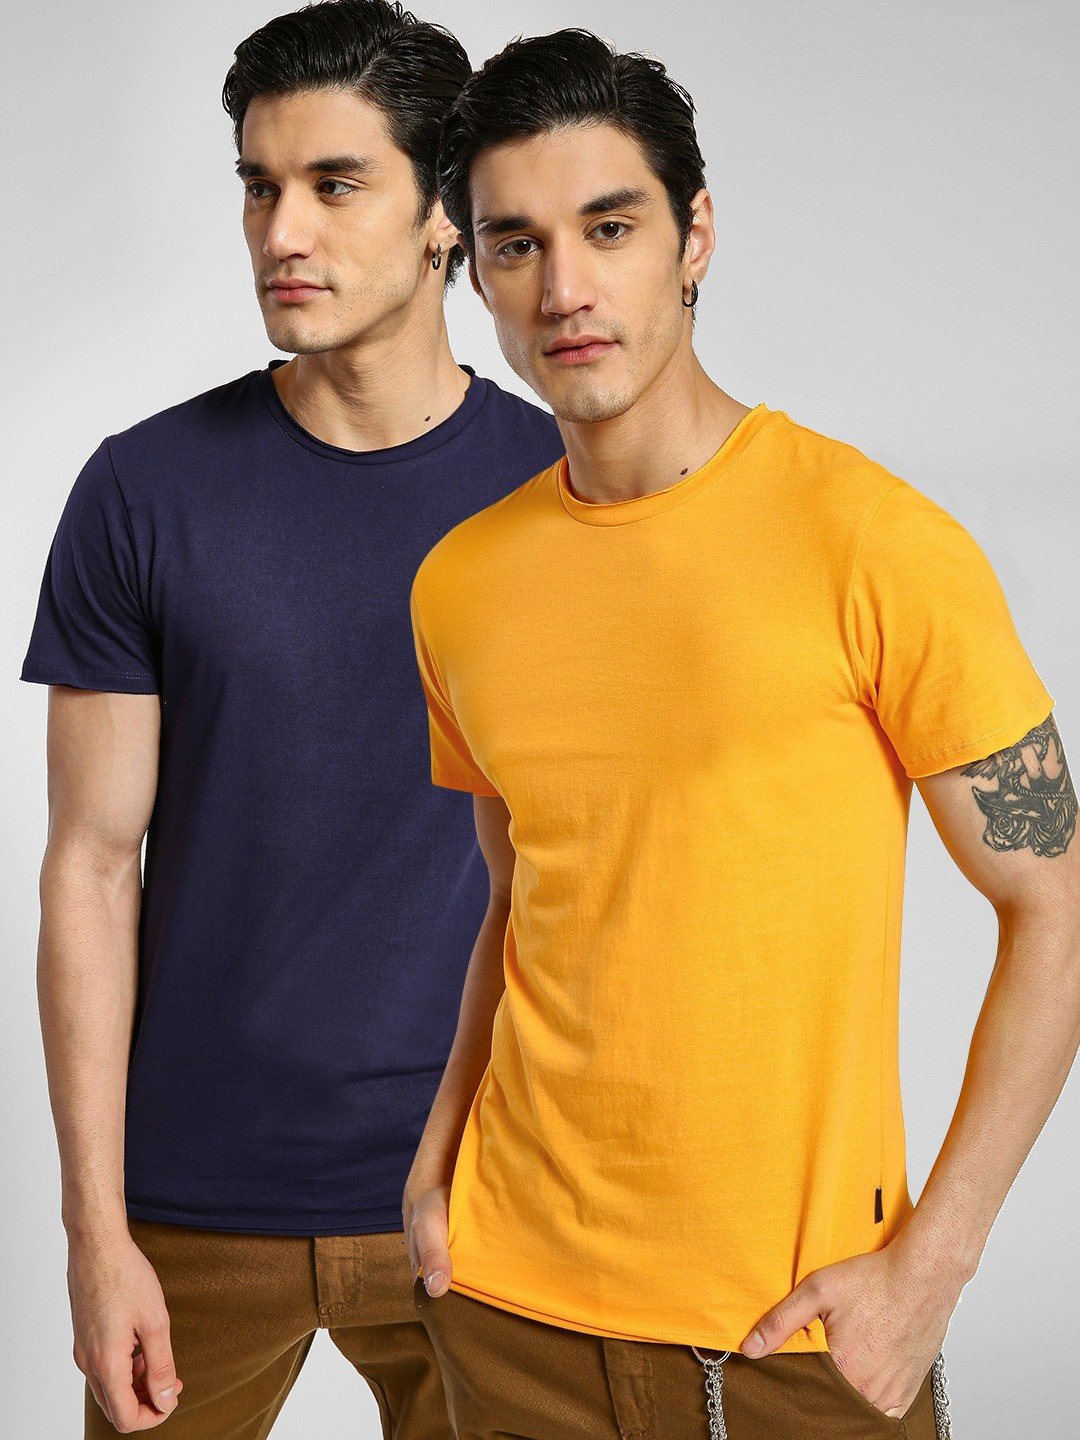 KOOVS NAVY/YELLOW Basic Crew T-Shirt (Pack Of 2) 1